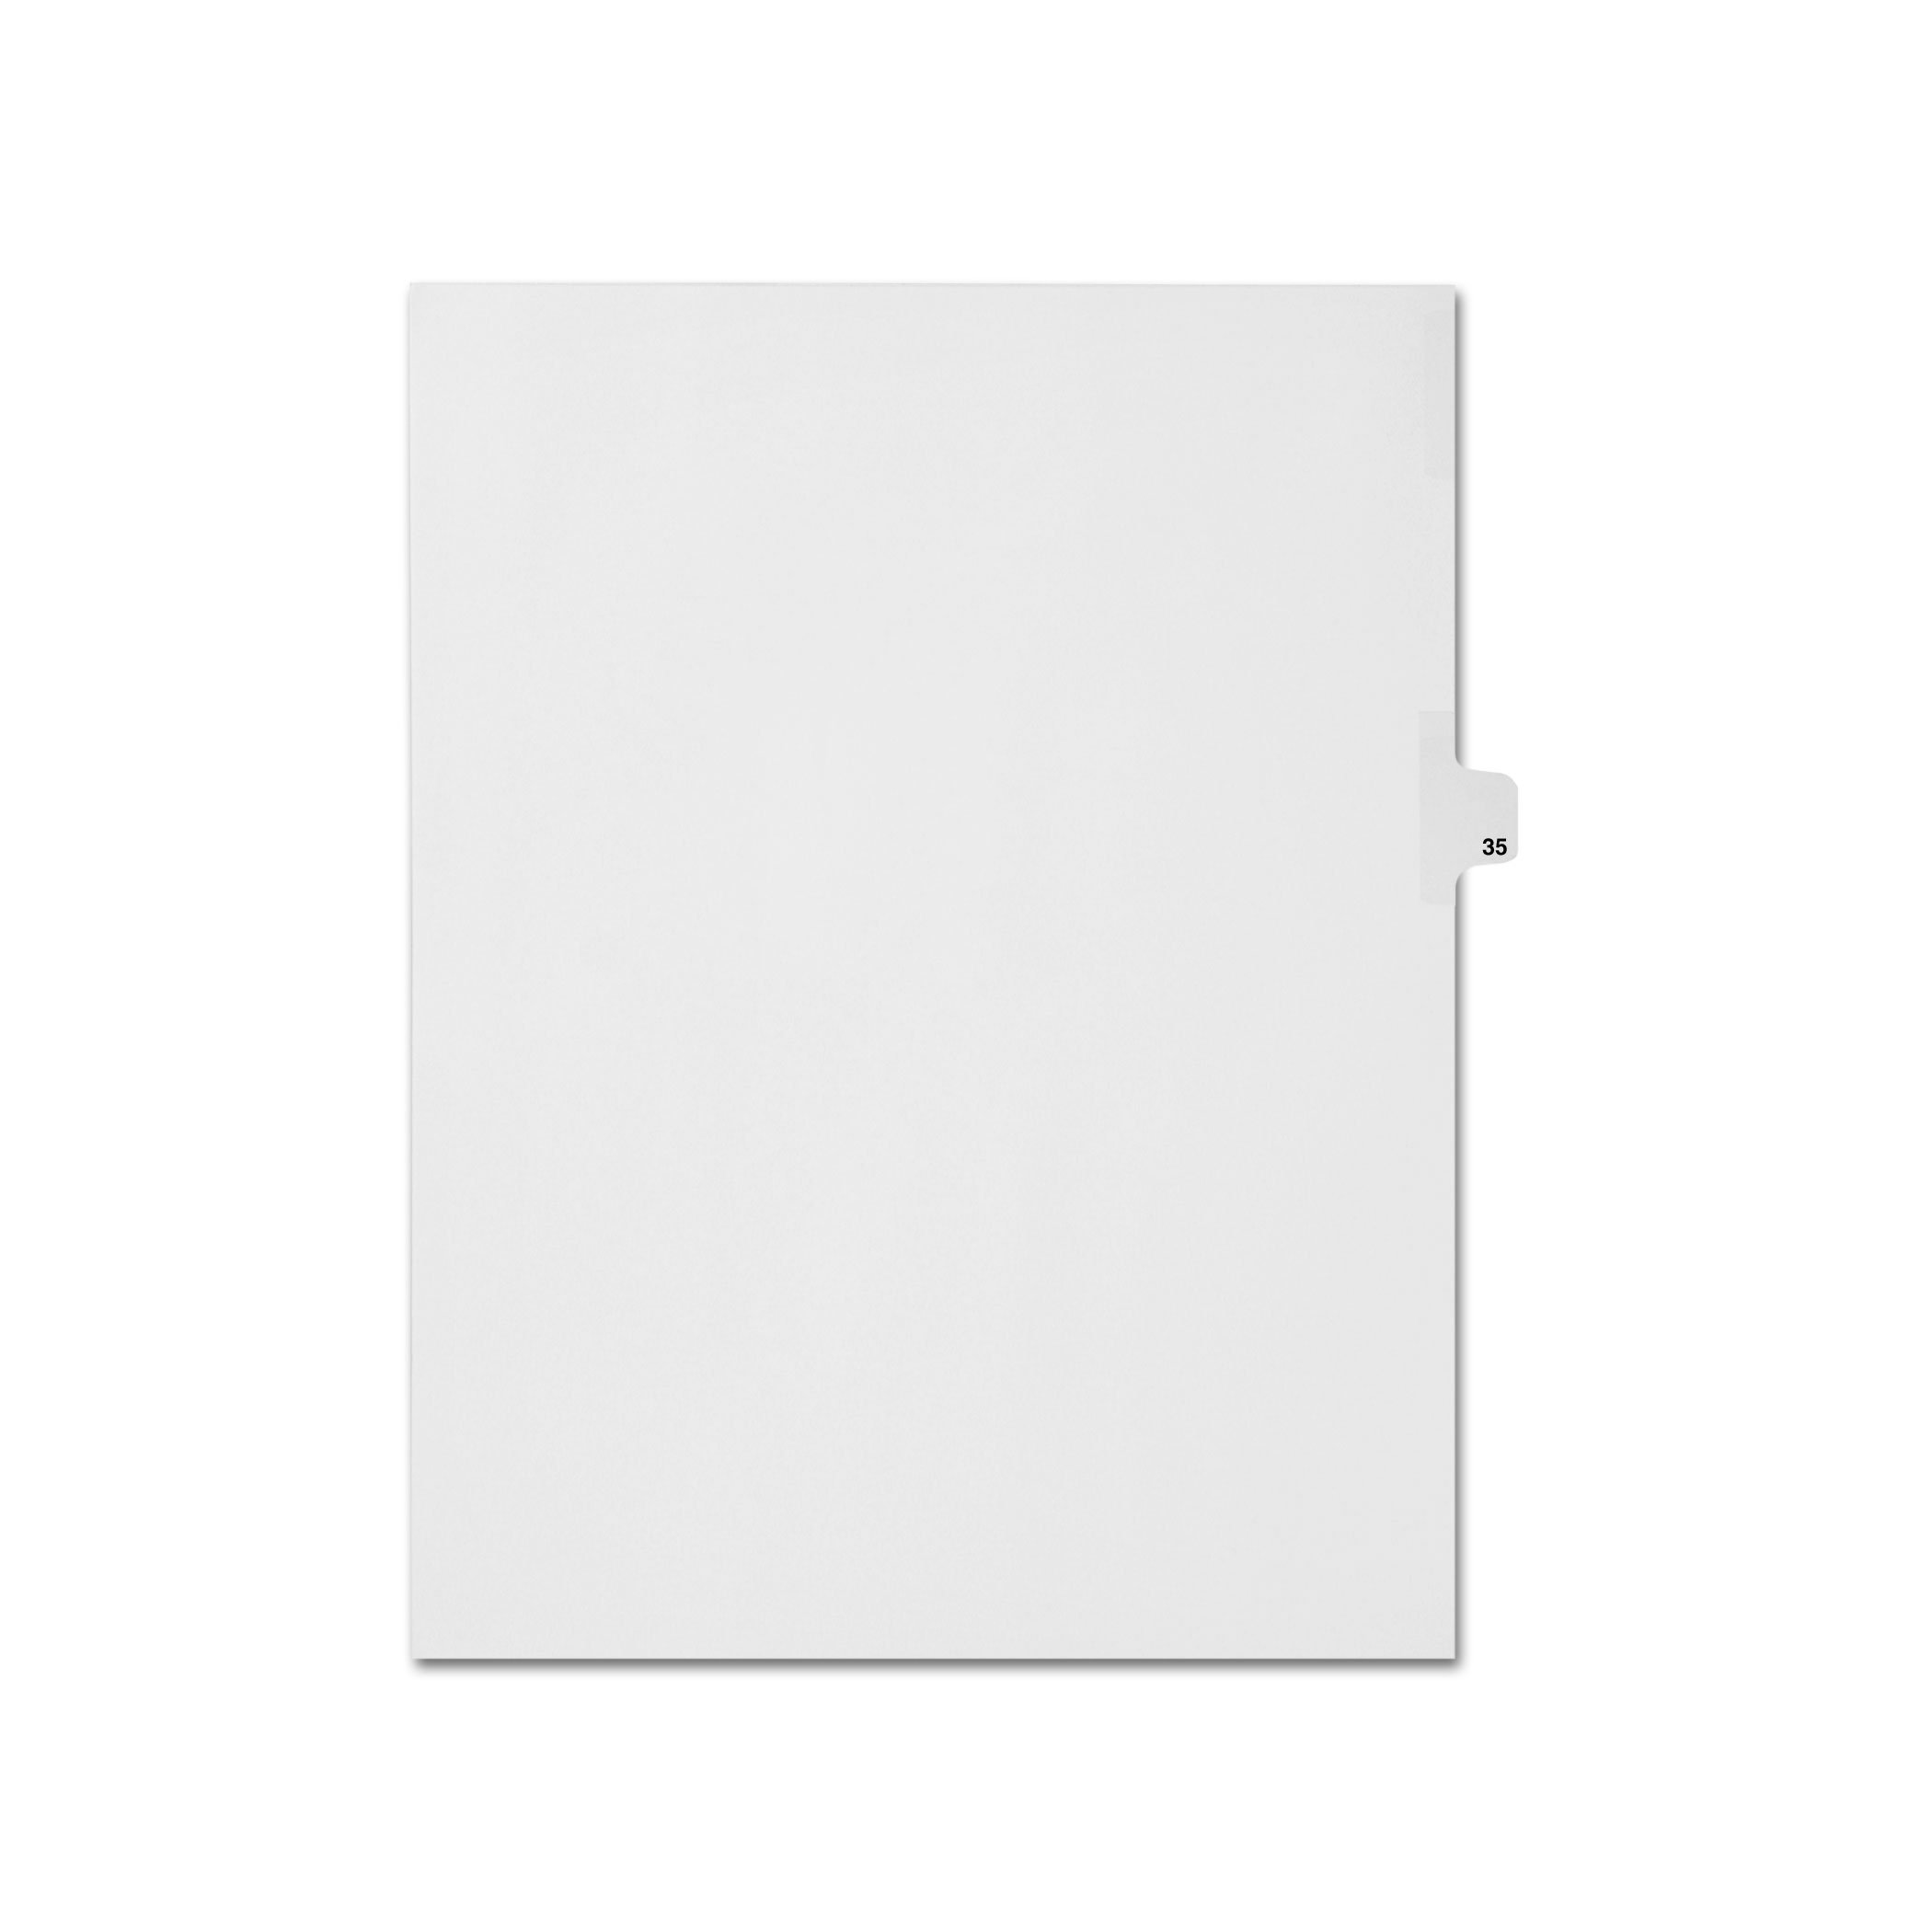 AMZfiling Individual Legal Index Tab Dividers, Compatible with Avery- Number 35, Letter Size, White, Side Tabs, Position 10 (25 Sheets/pkg)